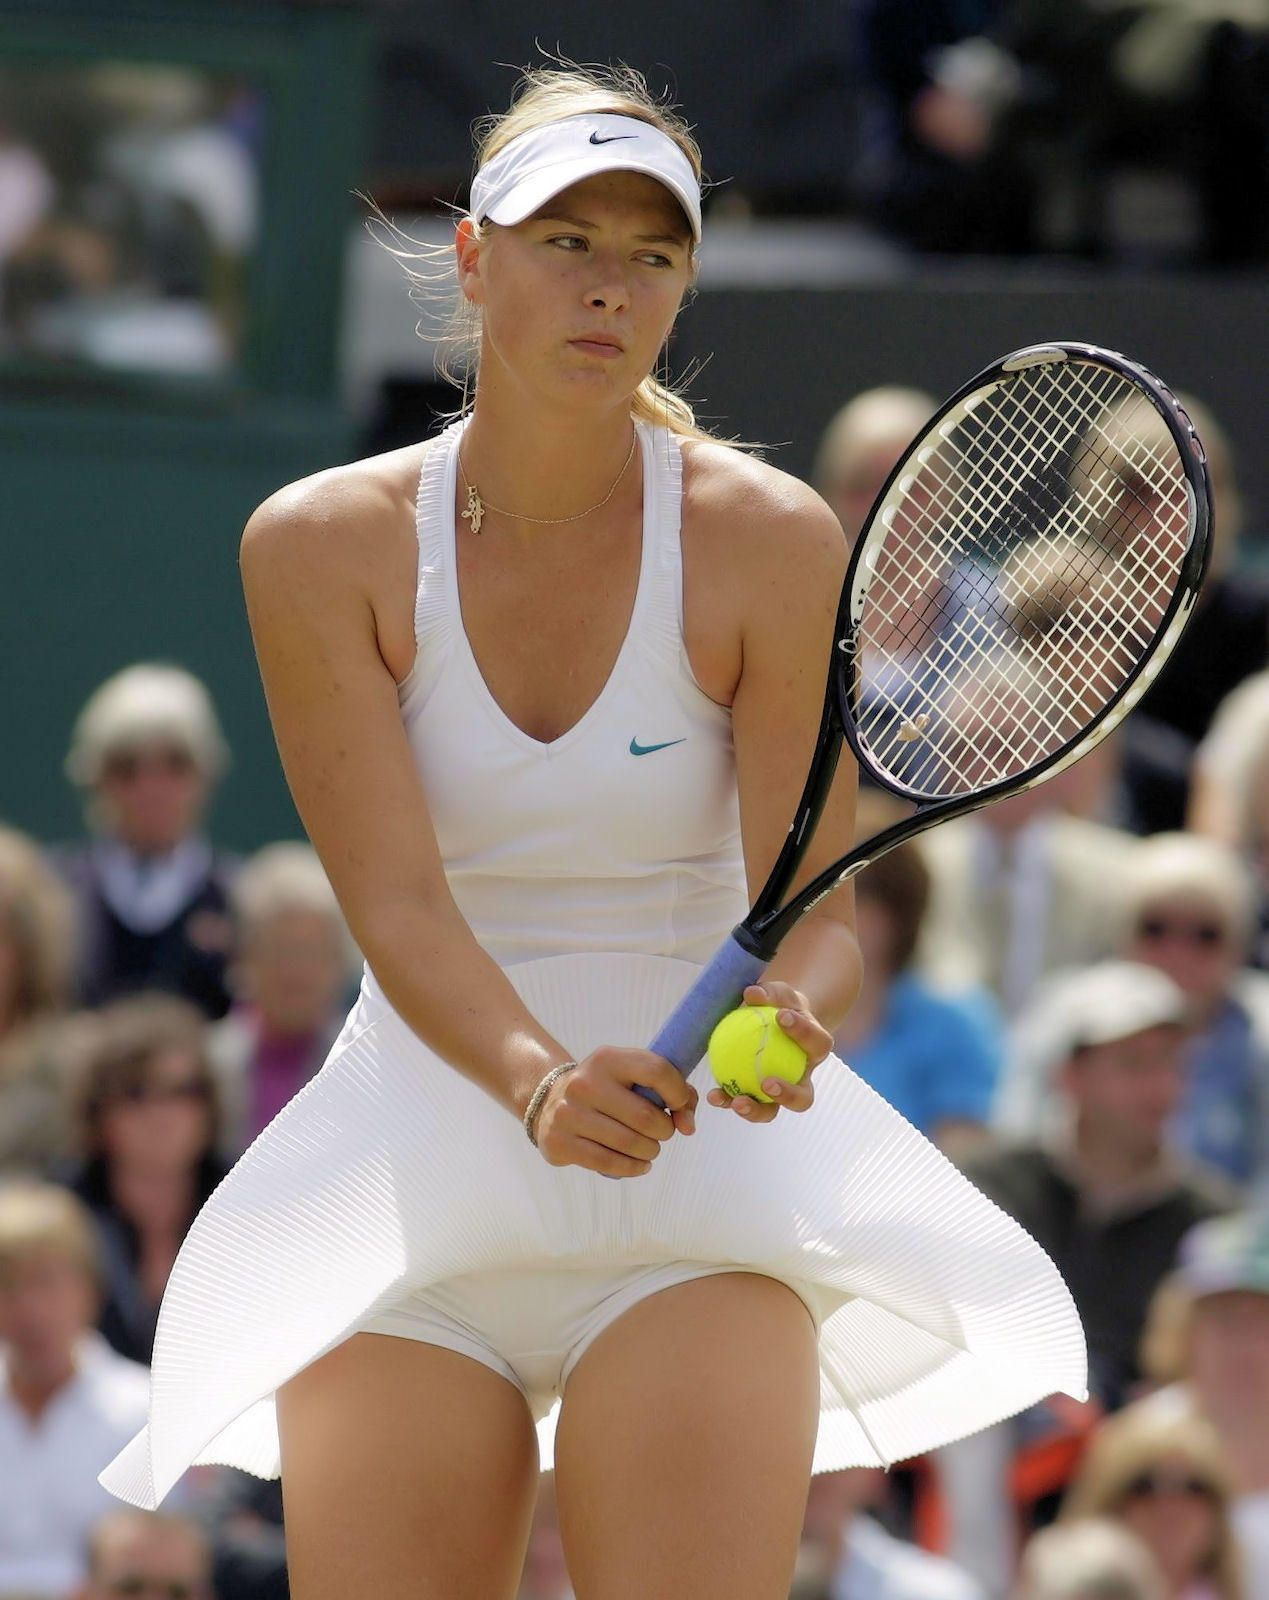 Maria Sharapova Upskirt photos 1